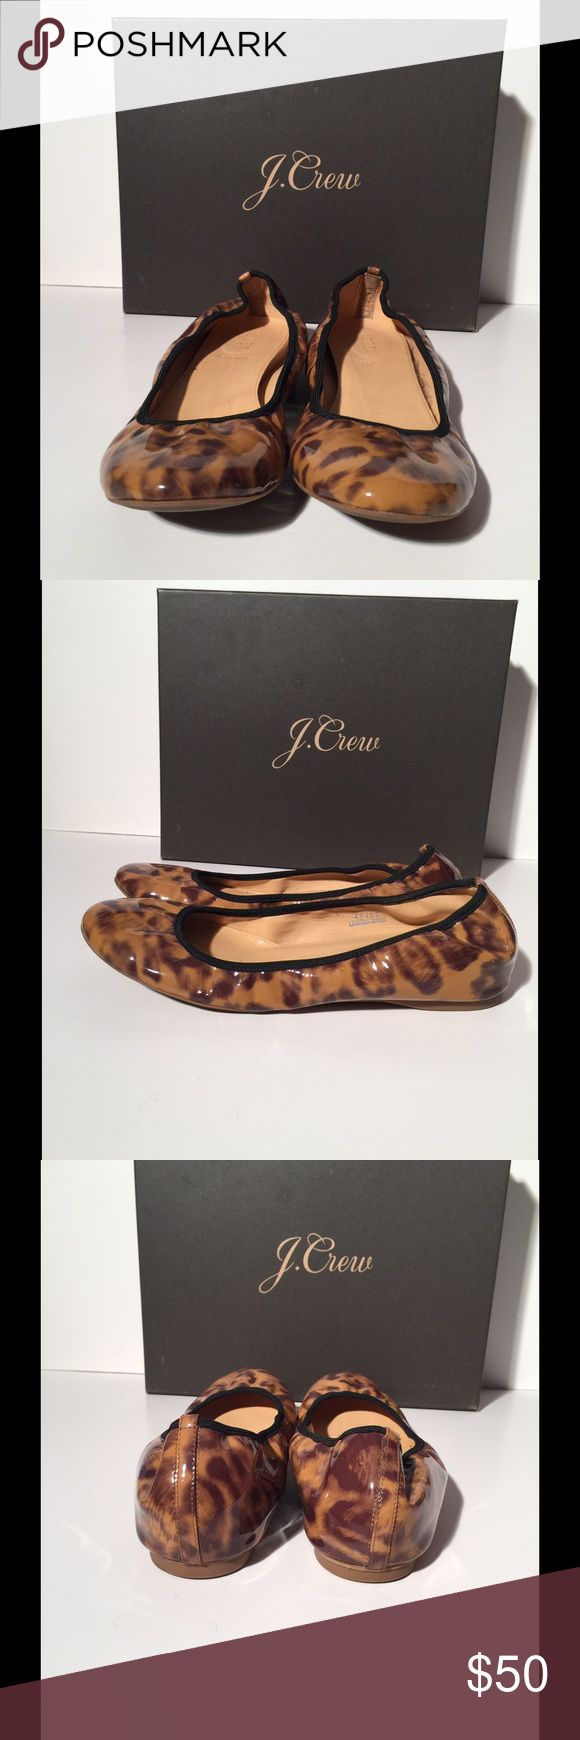 ❤JCrew Patent Animal Print Ballet Flat❤ Great little ballet flat for causal days and running errands. Very comfortable. Gently used. No visible signs of wear. J. Crew Shoes Flats & Loafers